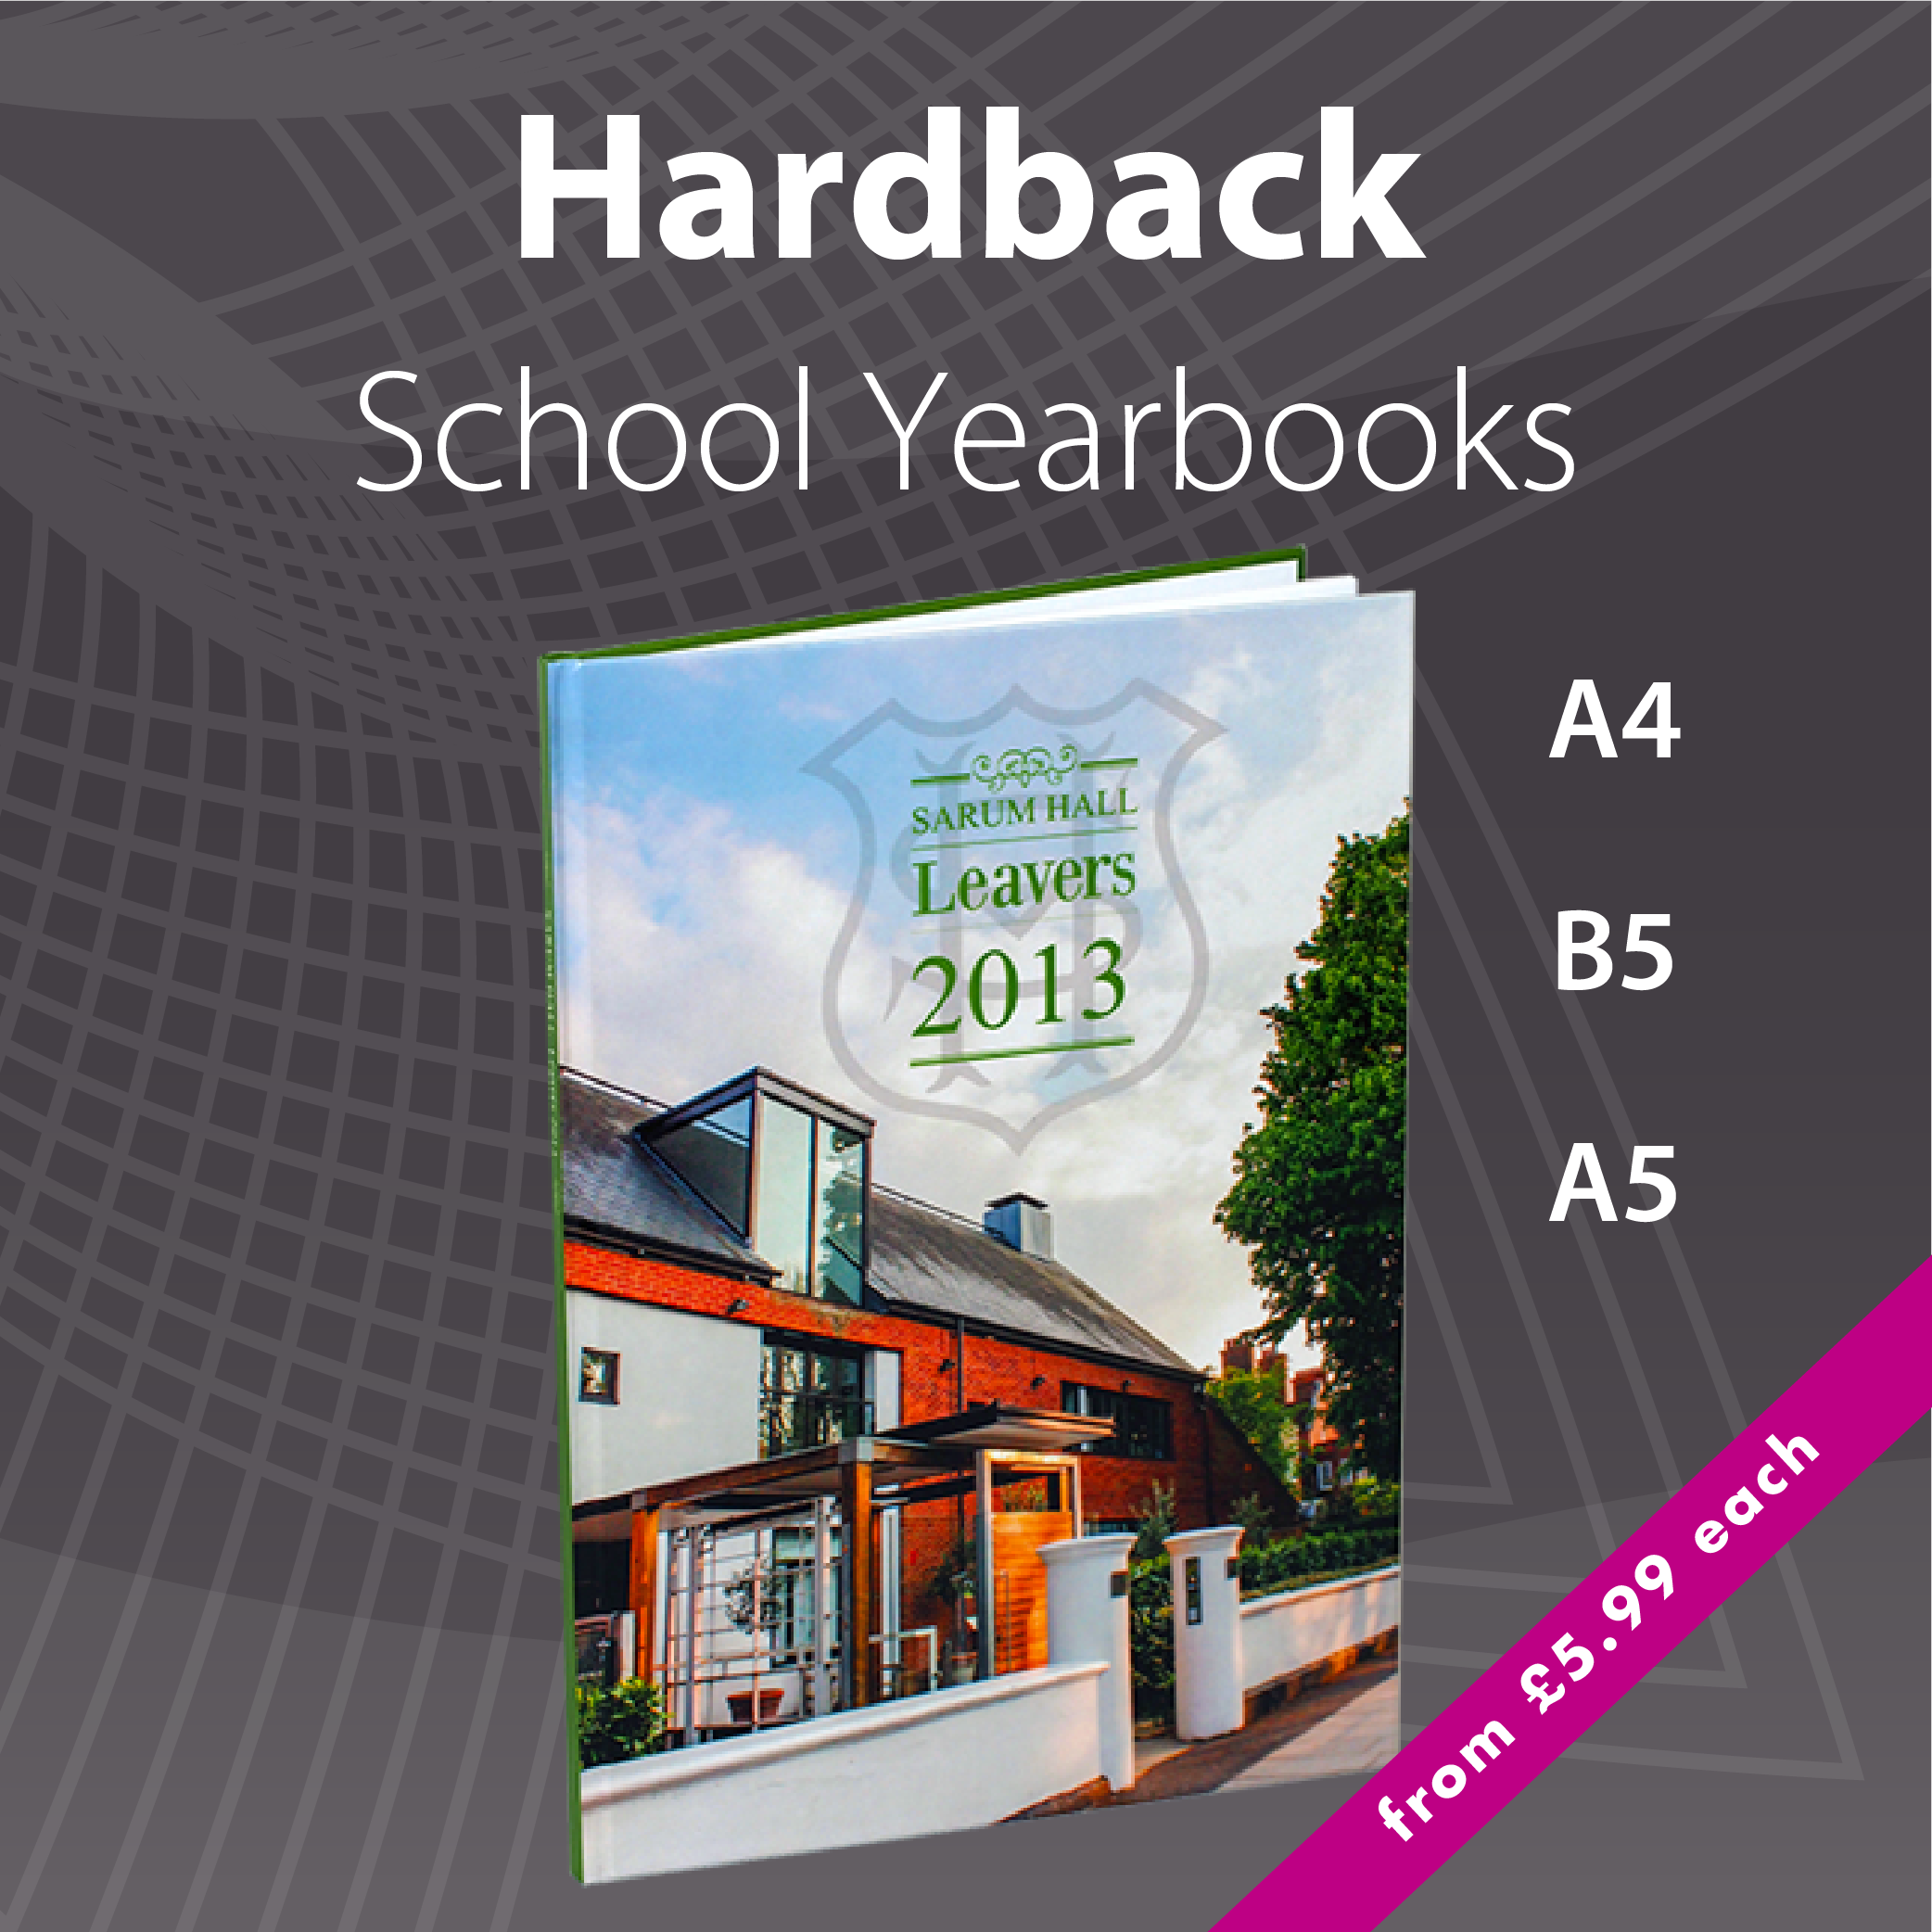 Low Cost Premium Hardback School Yearbook Printing